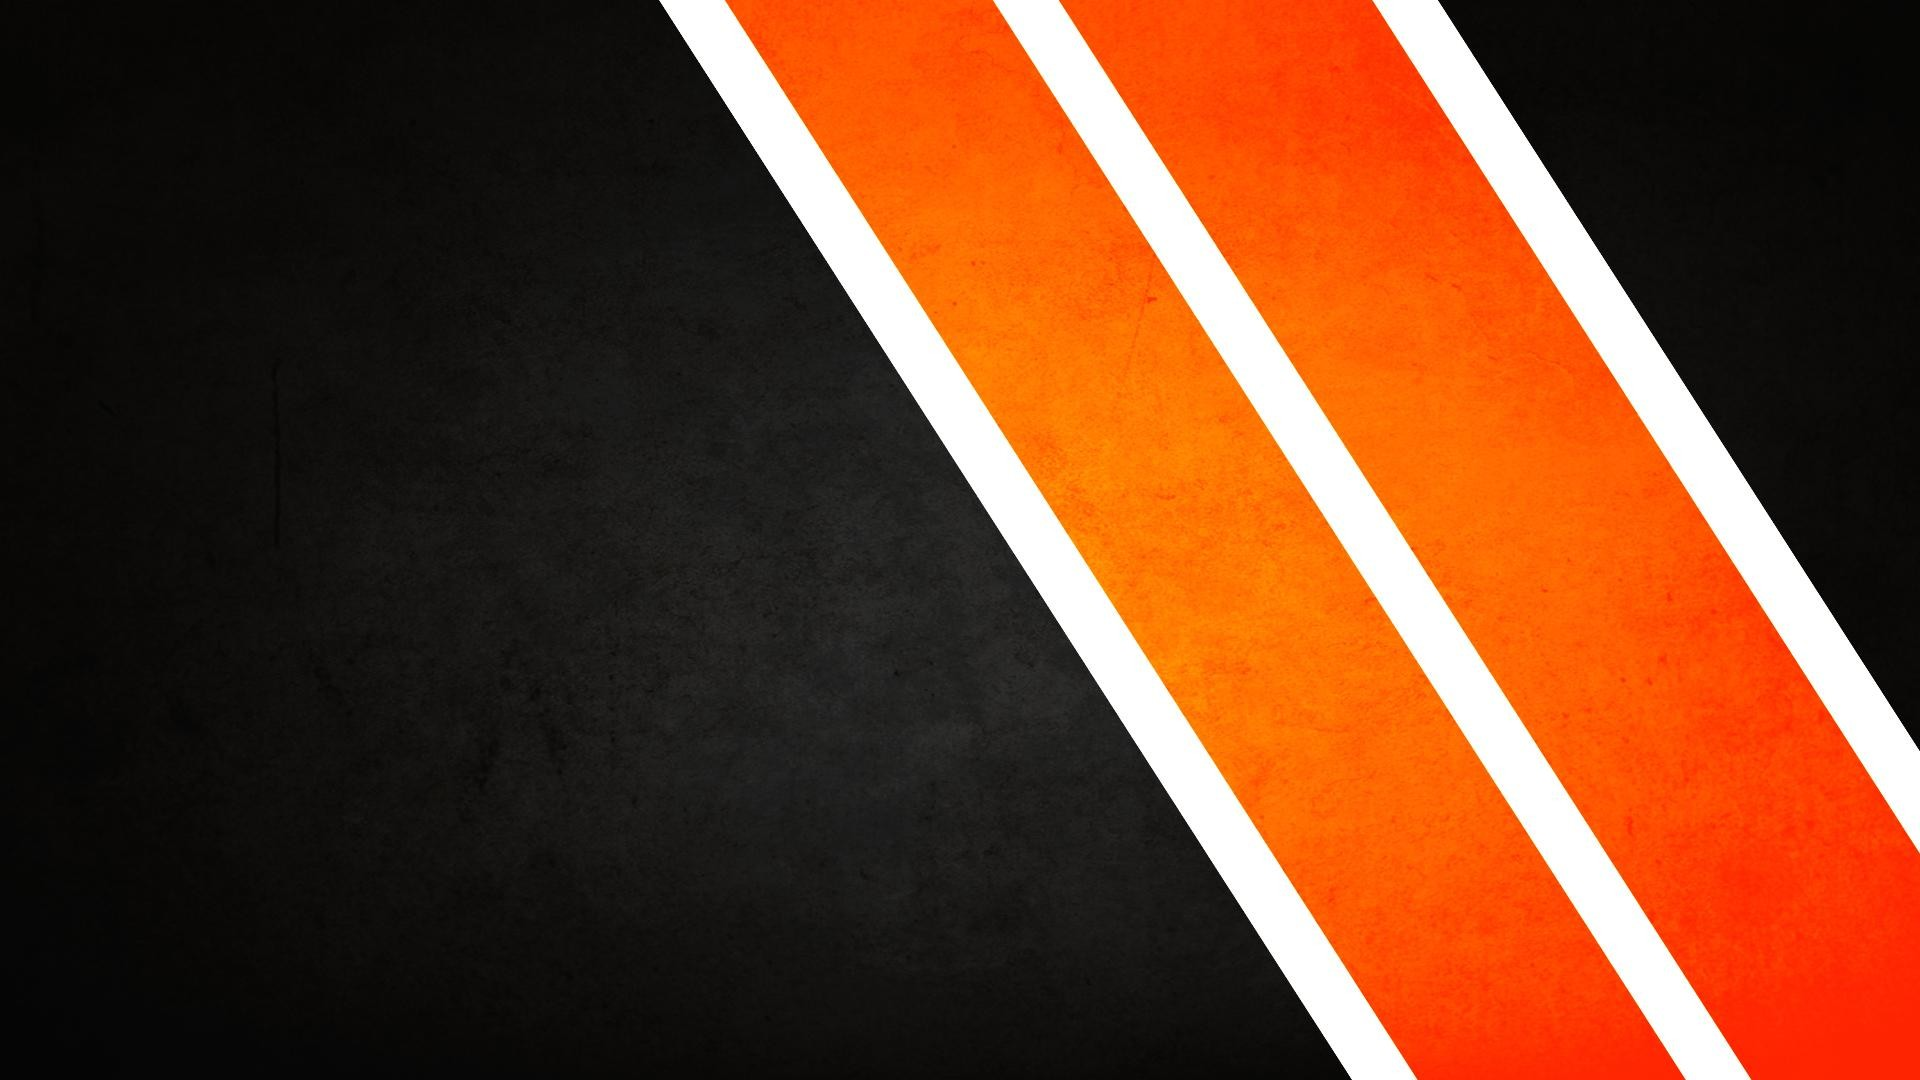 black orange wallpaper  Black and Orange Wallpaper (74  images)